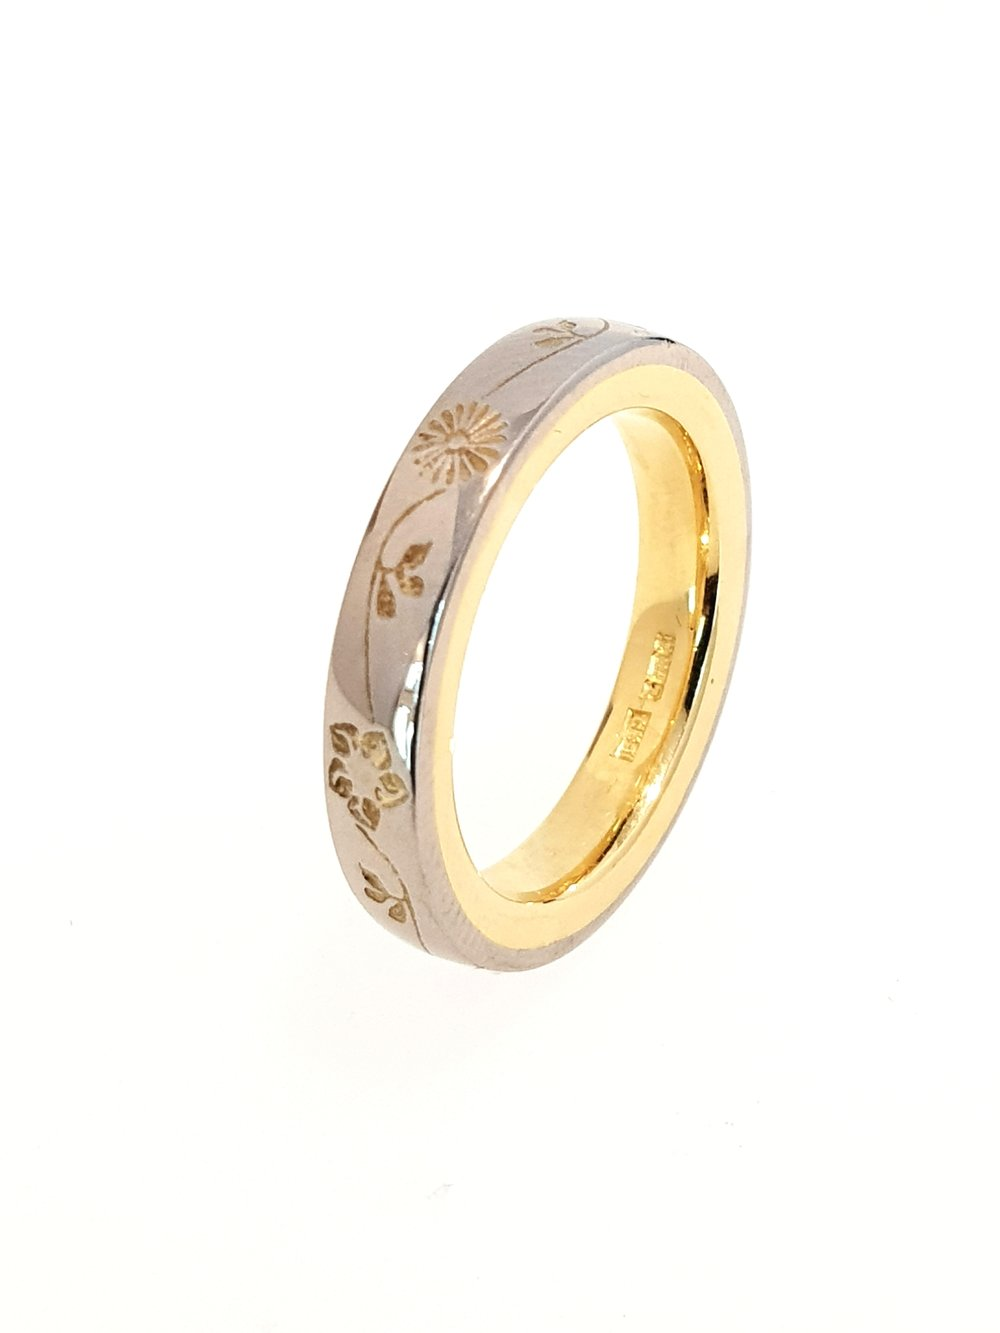 18ct White & Yellow Gold 4mm Band